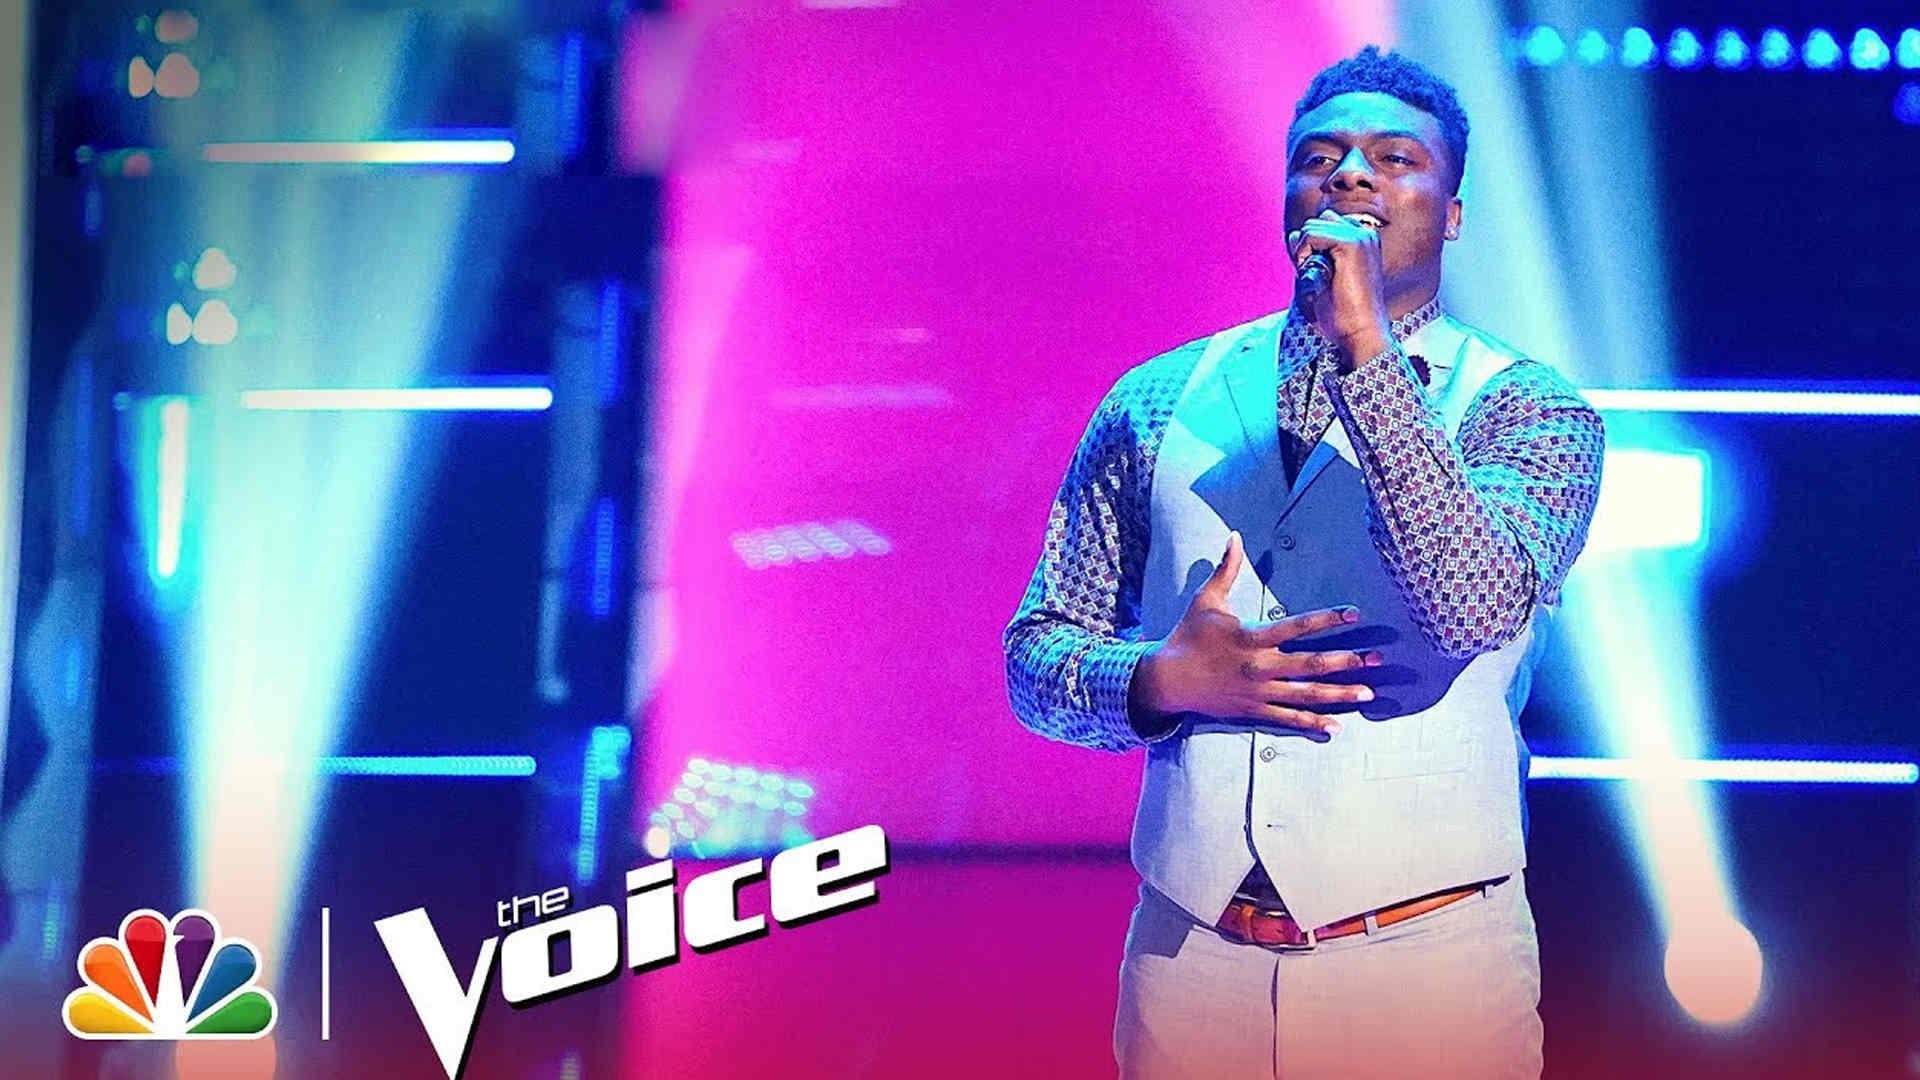 Vote Kirk Jay The Voice 2018 Live Top 13 on 19 November 2018 with The Voice 2018 Voting App Online